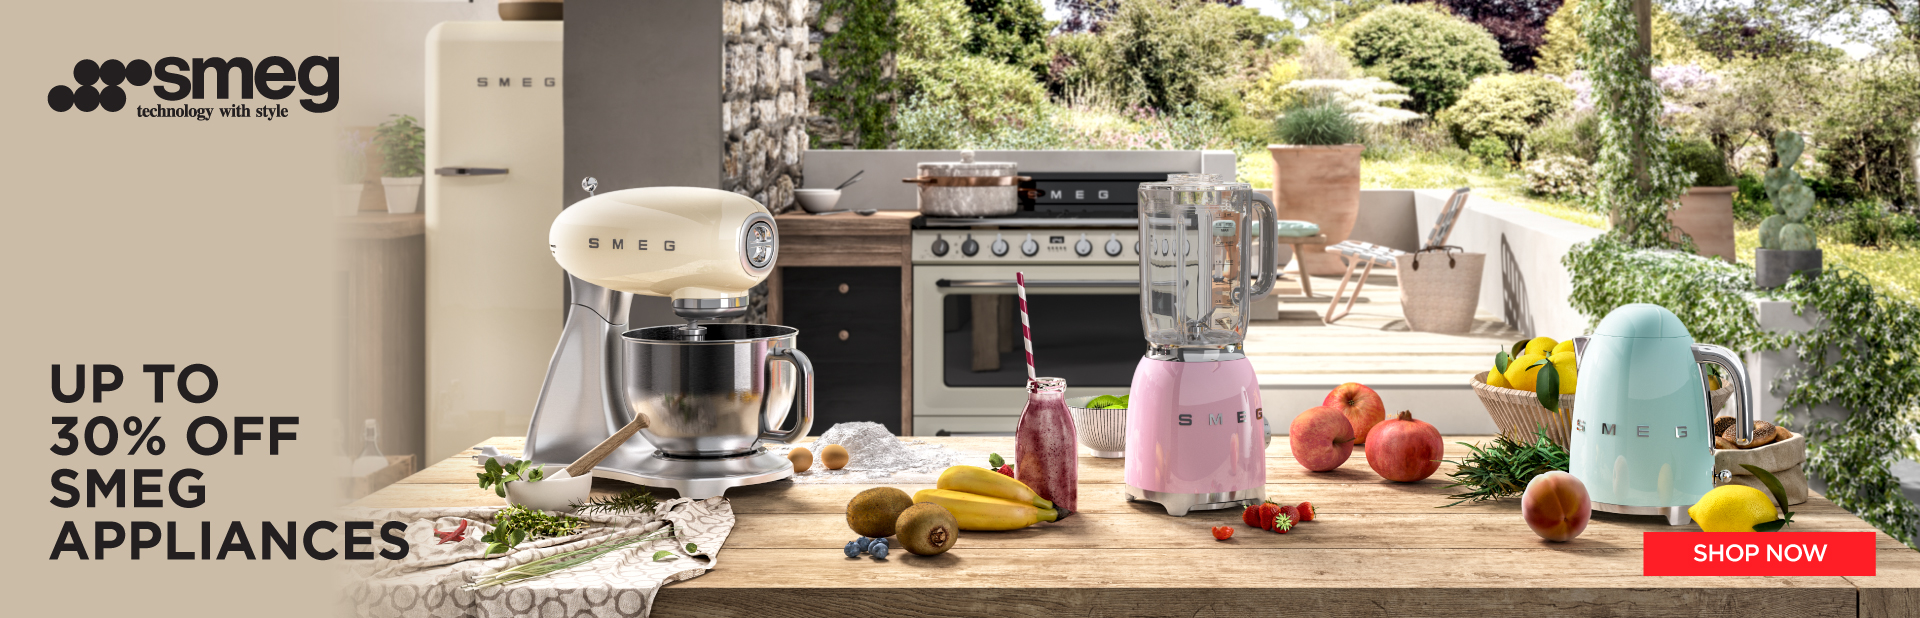 http://gstlsky.cn/deals/smeg-offers.html